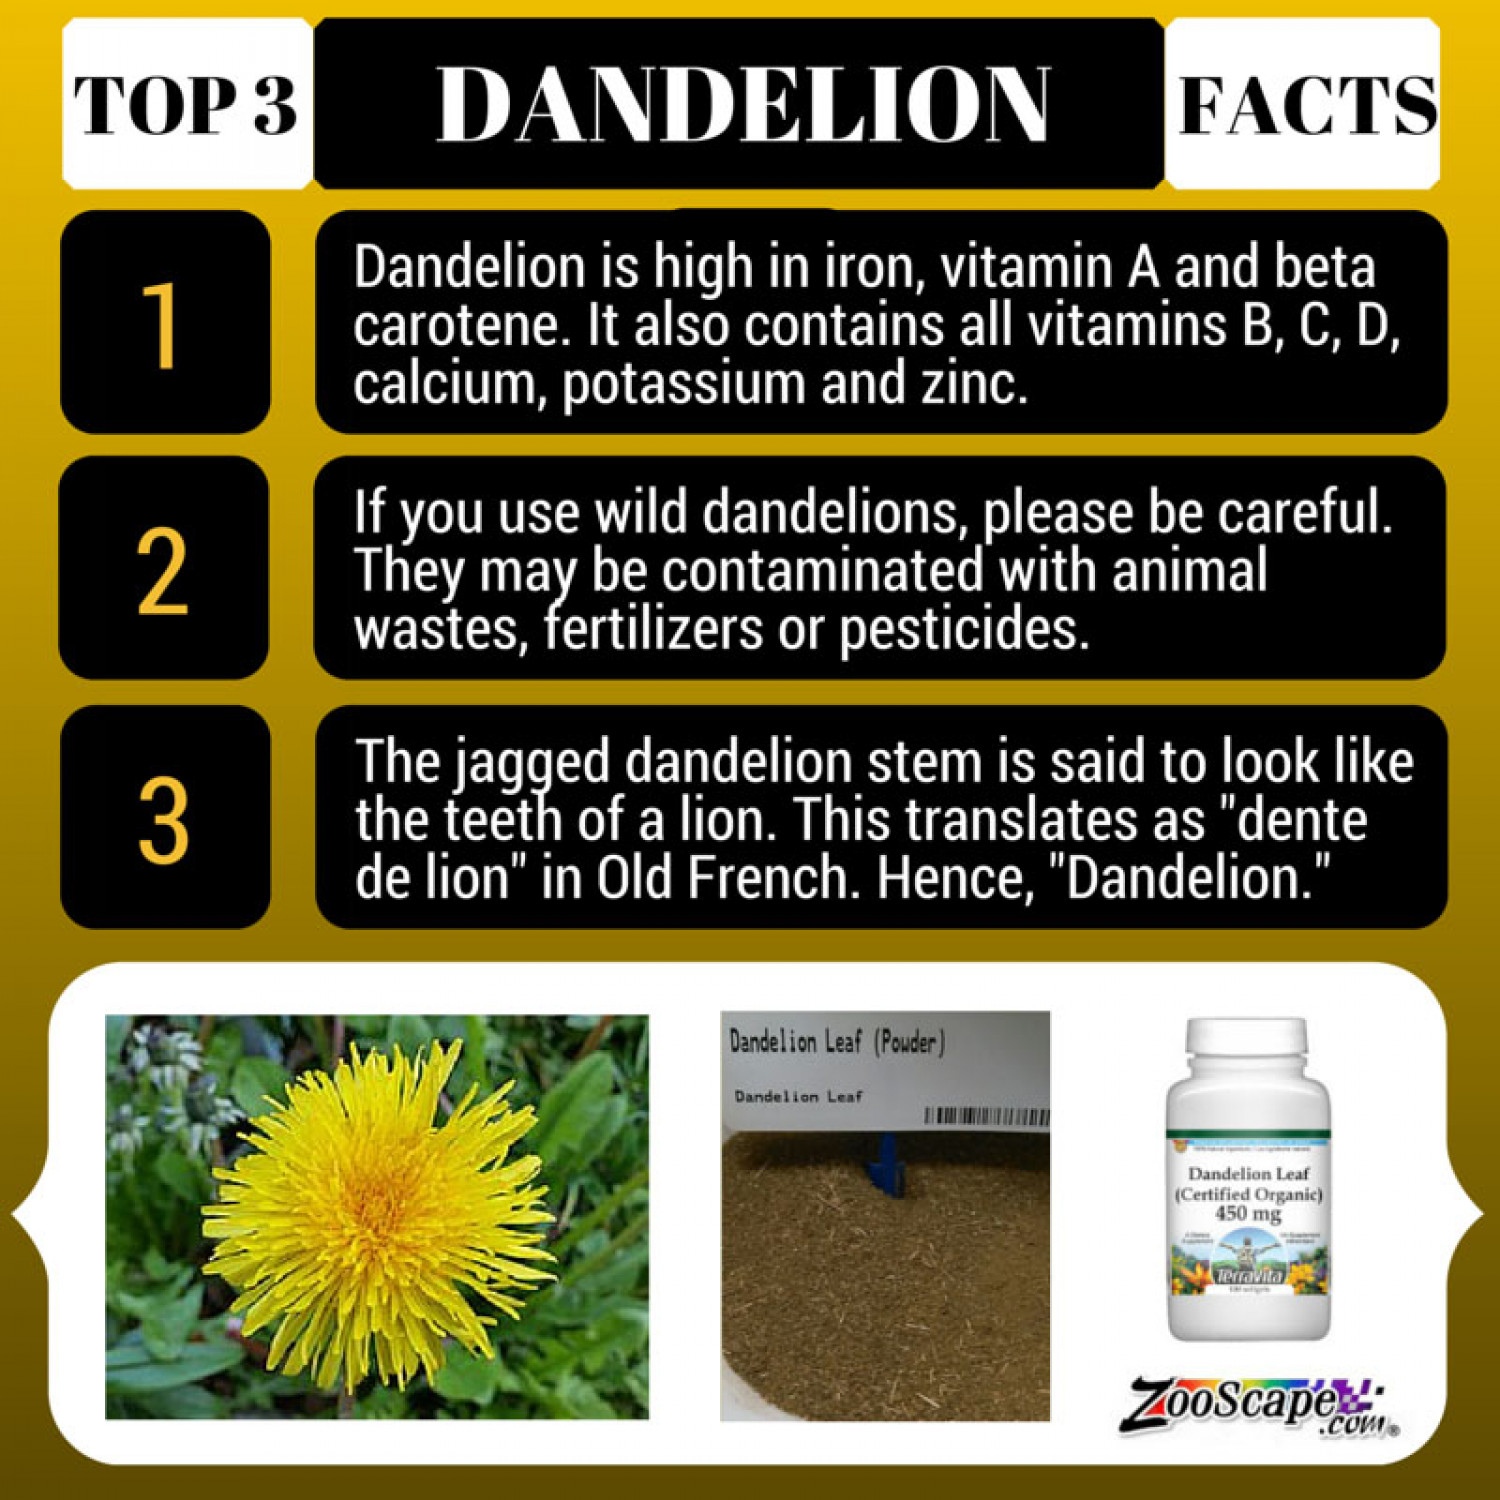 Top 3 Facts about Dandelion Infographic